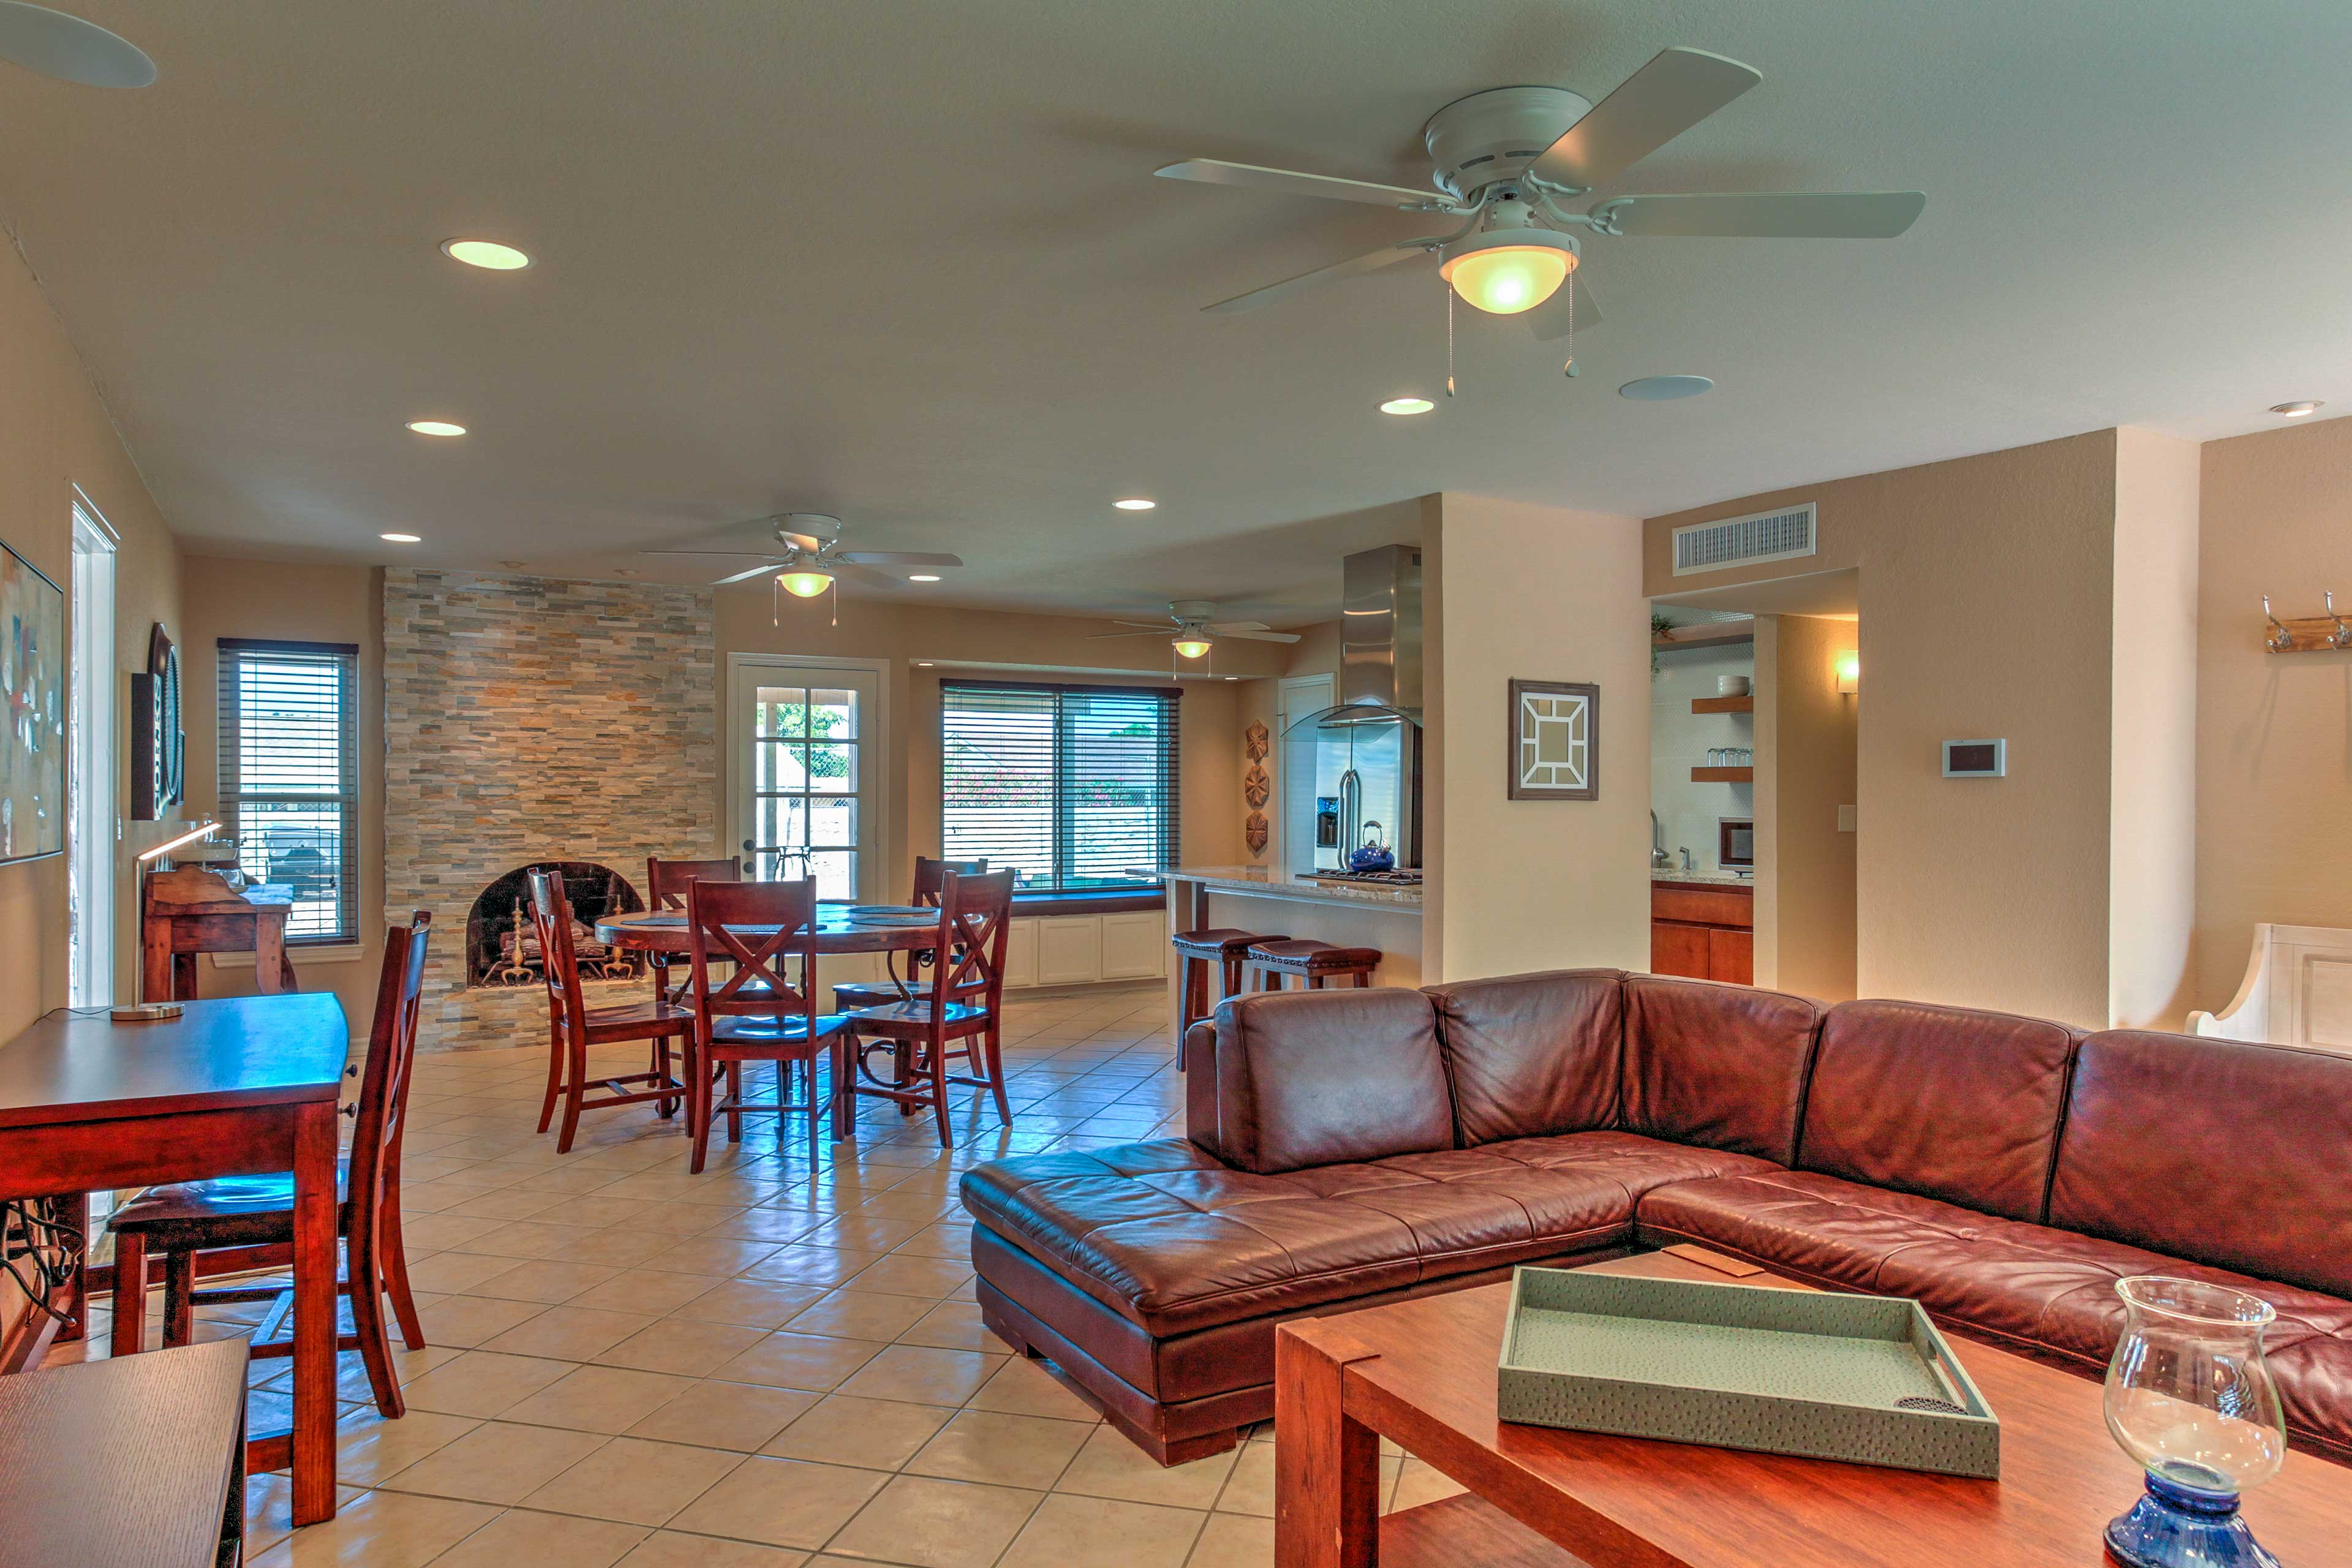 The interior includes a brand new kitchen and tasteful updates throughout.